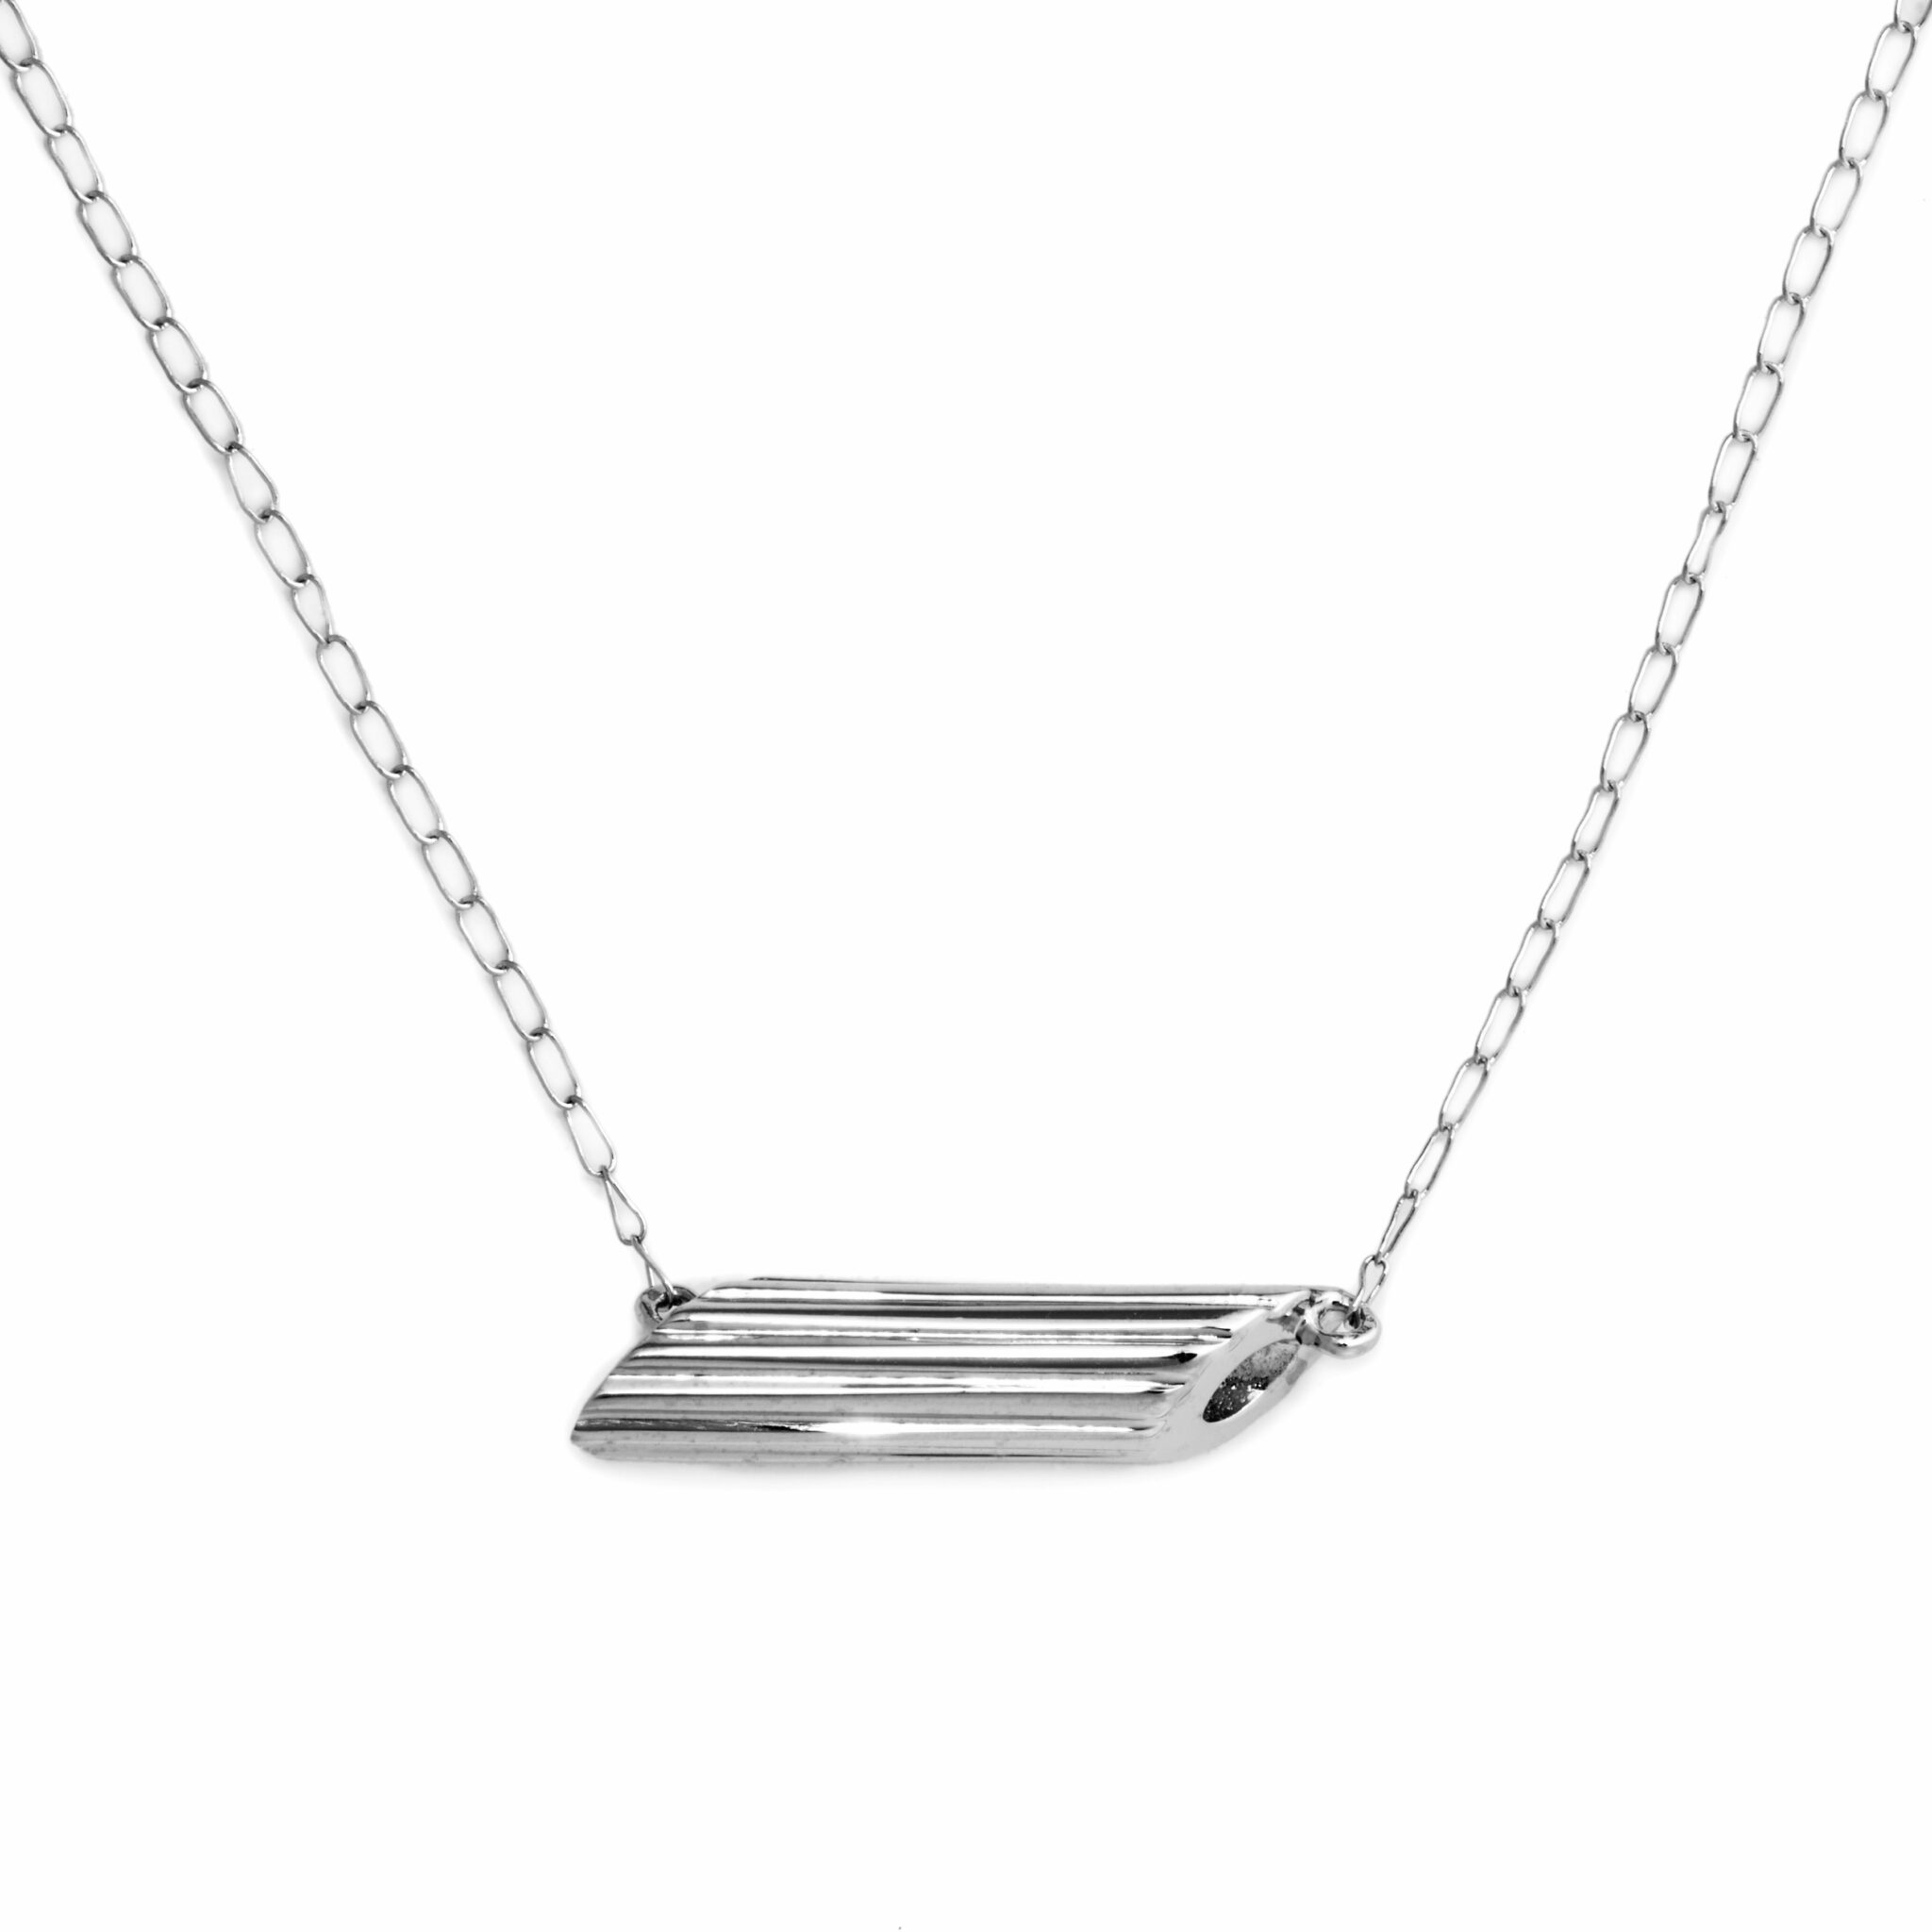 Penne Necklace, Mini Size, Sterling Silver